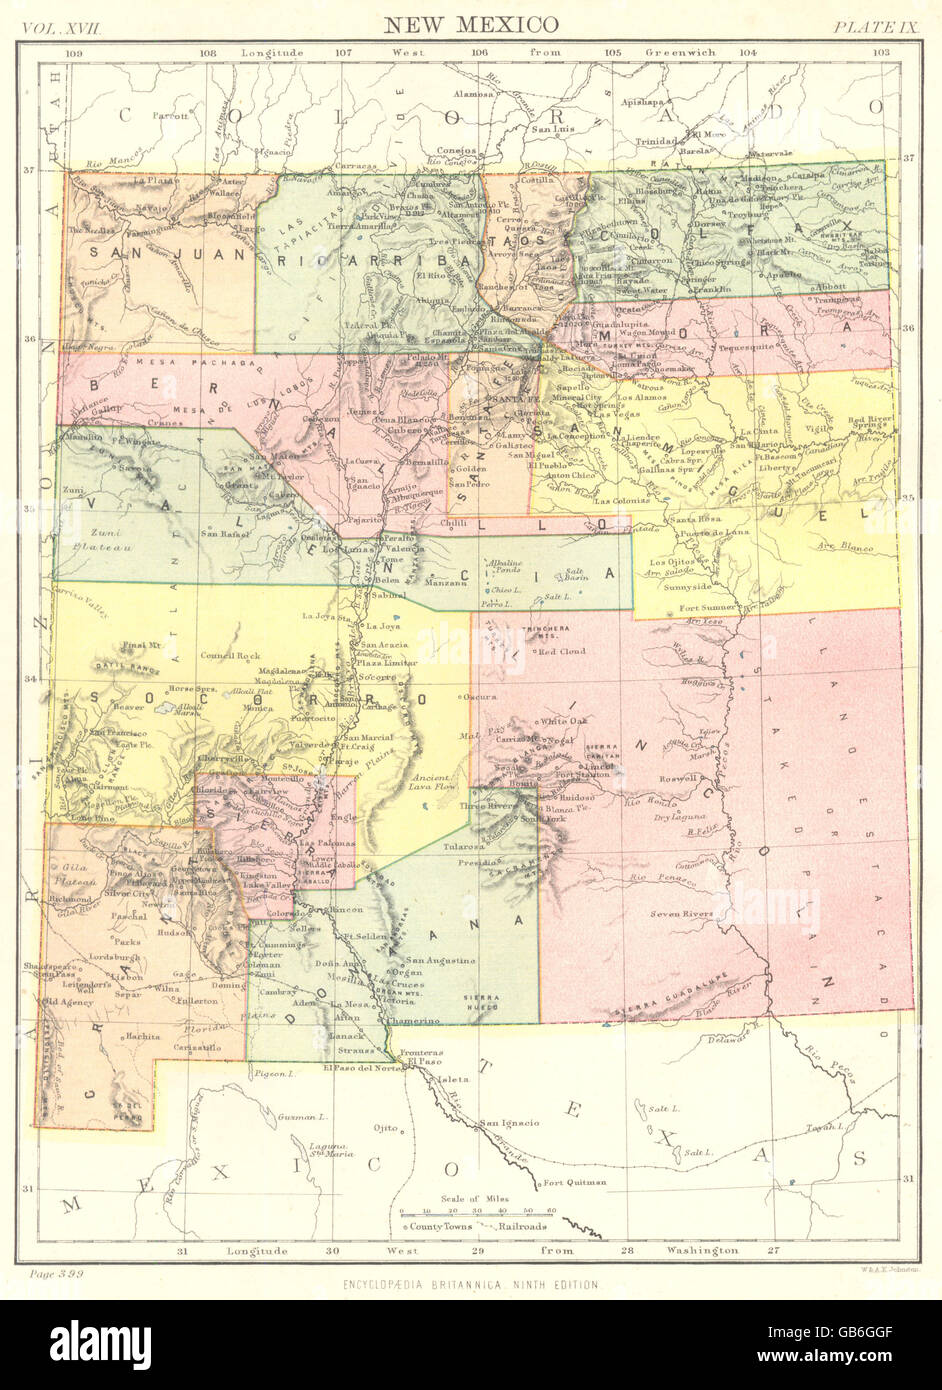 NEW MEXICO: State map showing counties. Britannica 9th edition, 1898 ...